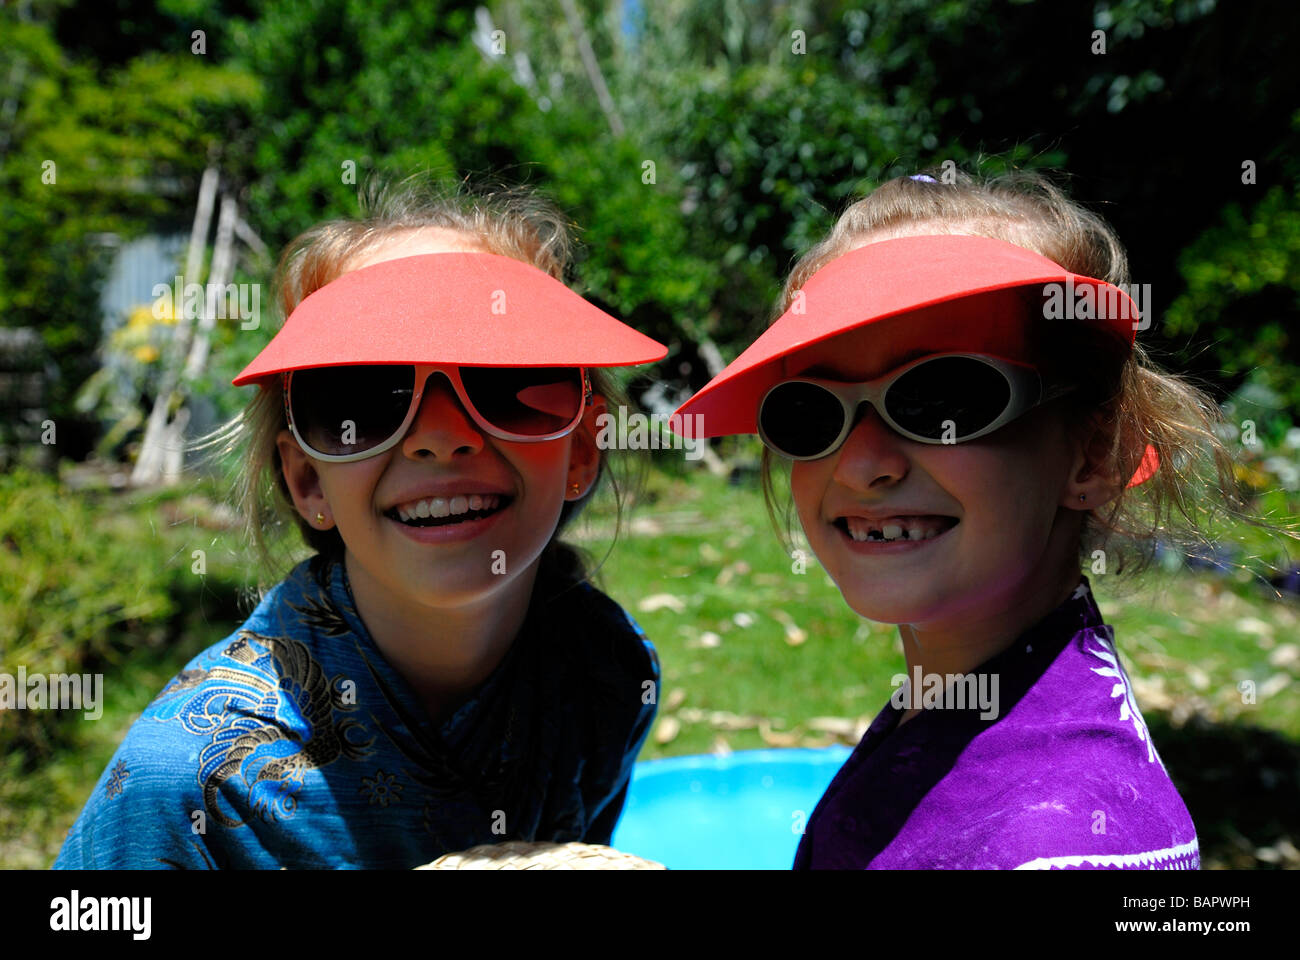 Two sisters (10 years old and 7 years old) wearing fashionable sunglasses and sun visors - Stock Image